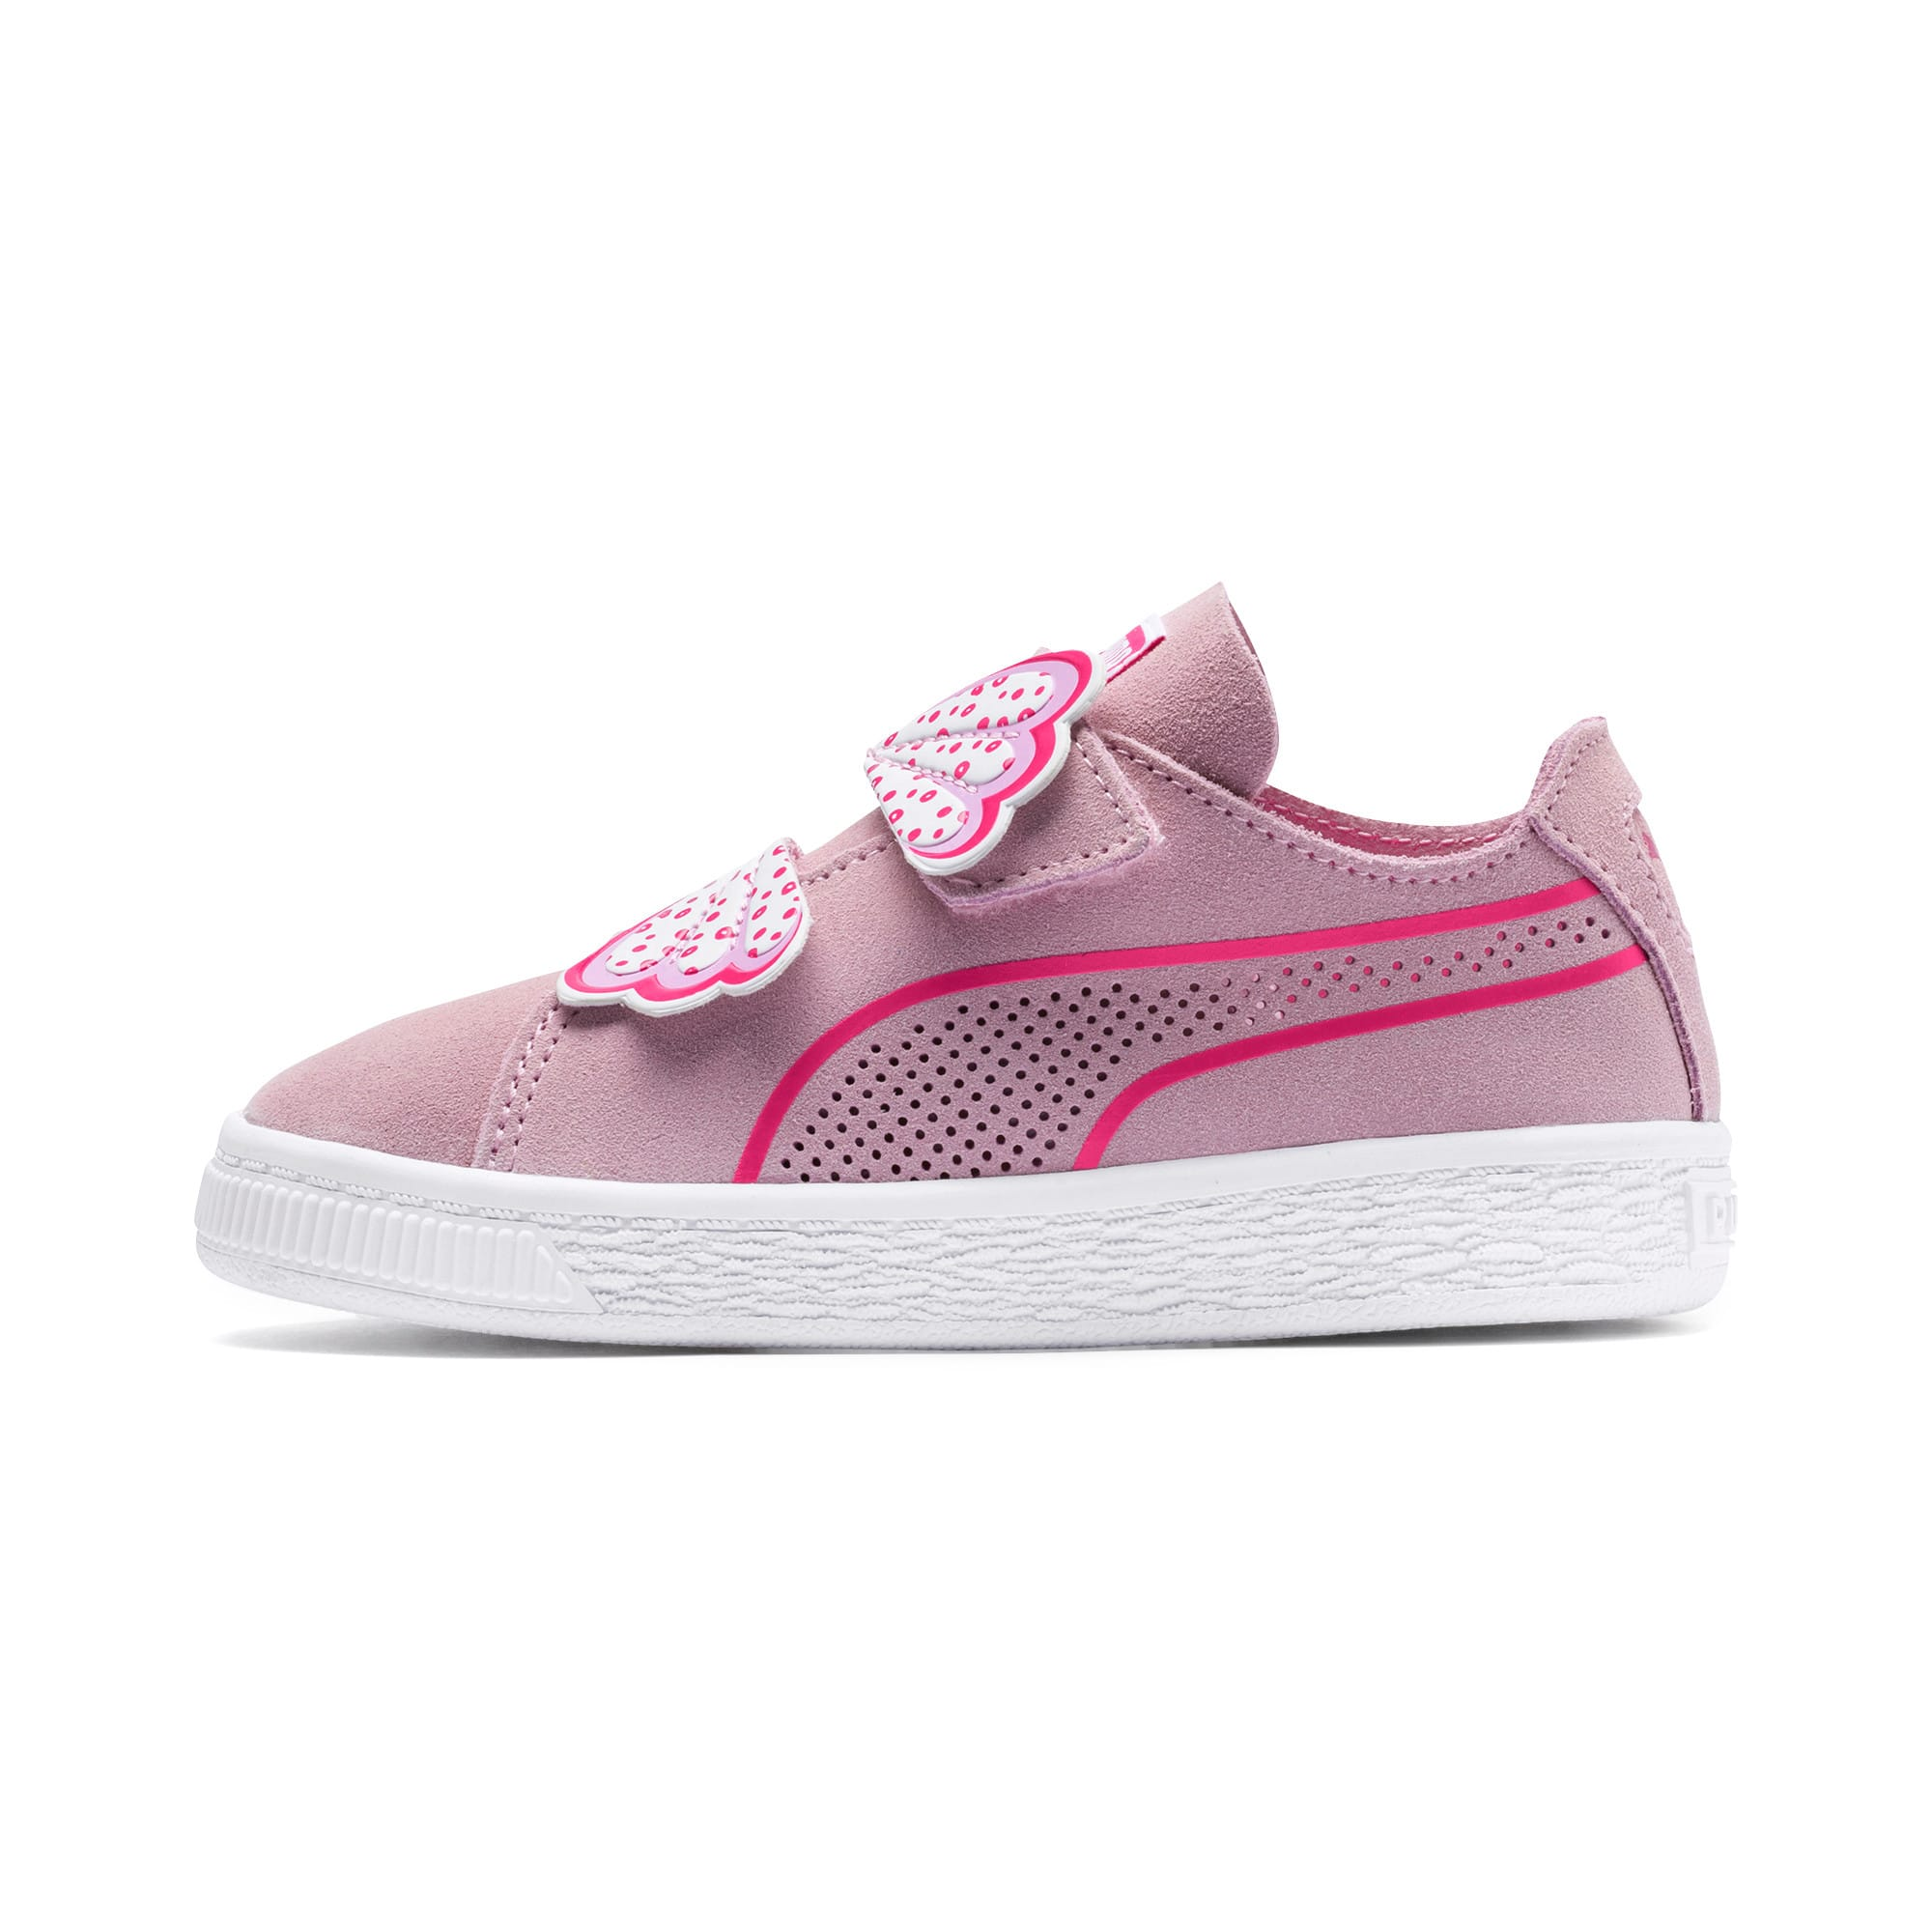 Thumbnail 1 of Suede Deconstruct Butterfly Toddler Shoes, Pale Pink-Fuchsia Purple, medium